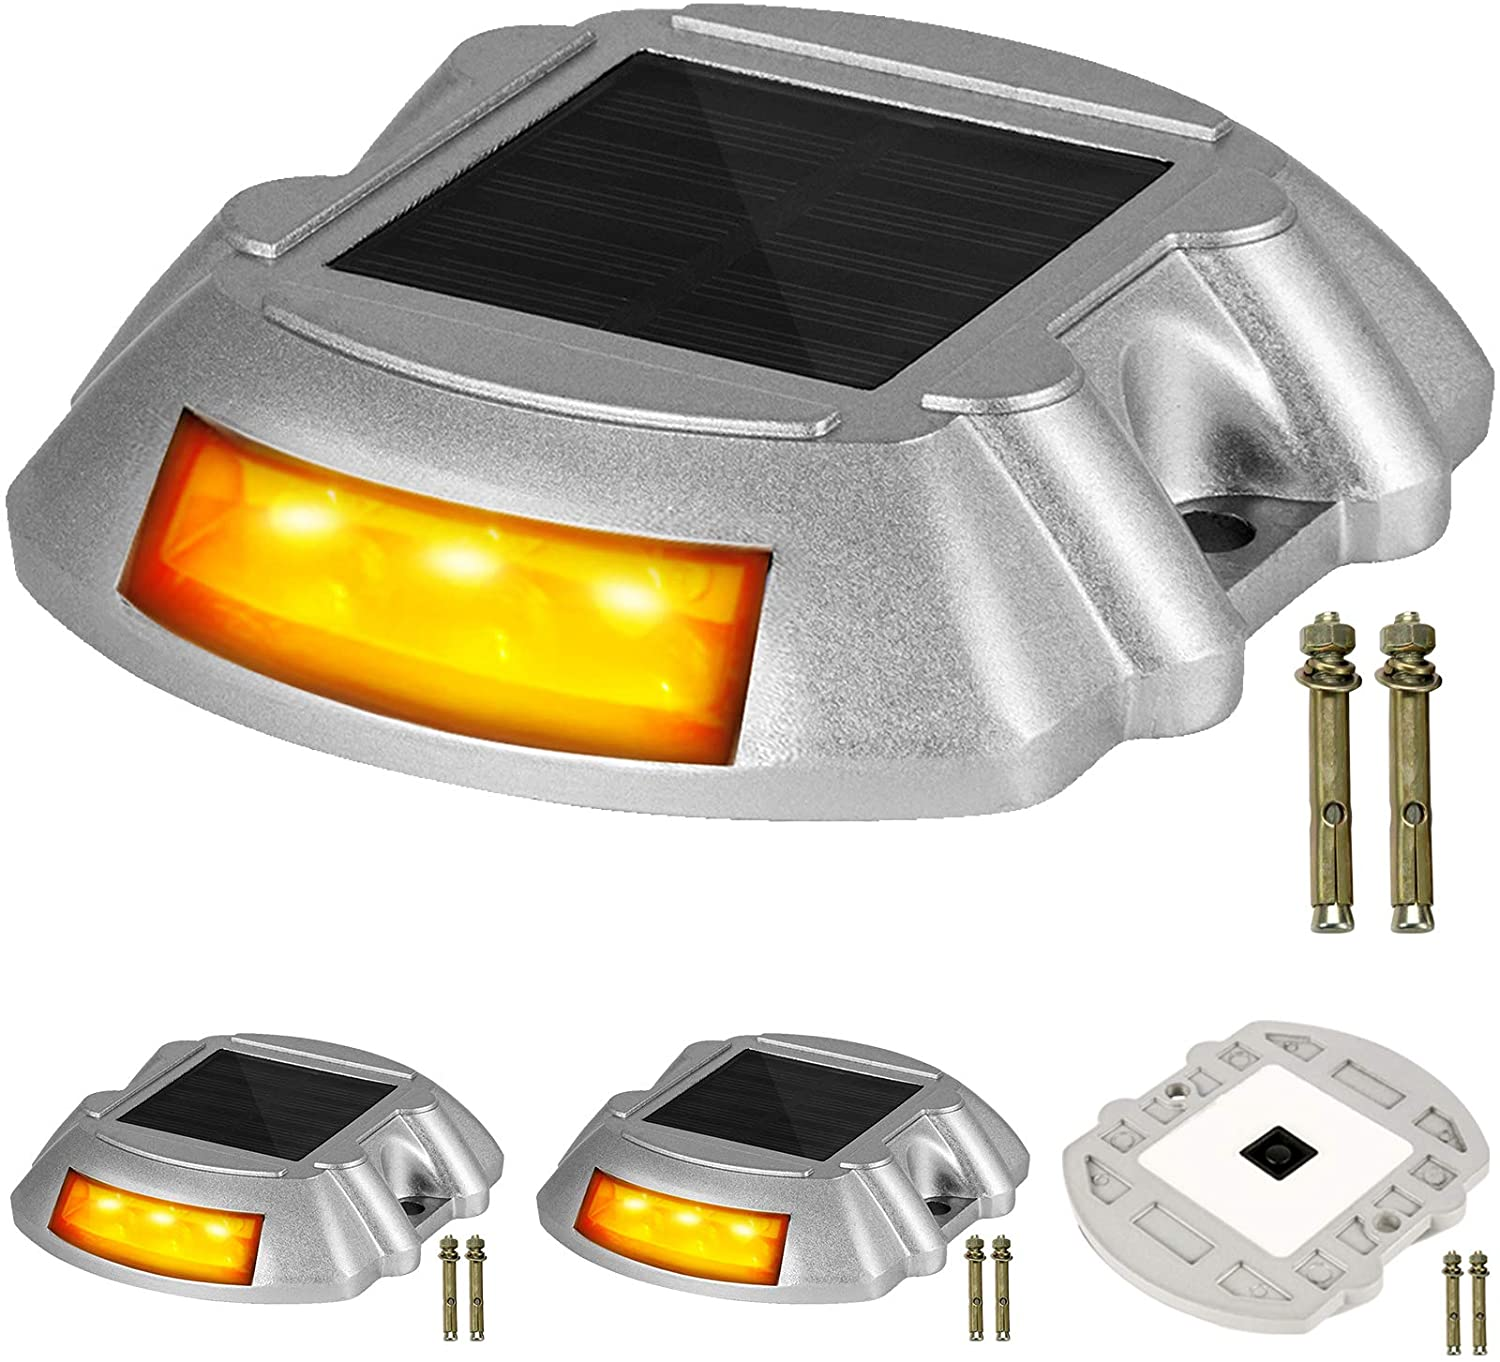 Happybuy Driveway Lights, Solar Driveway Lights, 6 LEDs Waterproof Wireless Dock Lights, 4-Pack